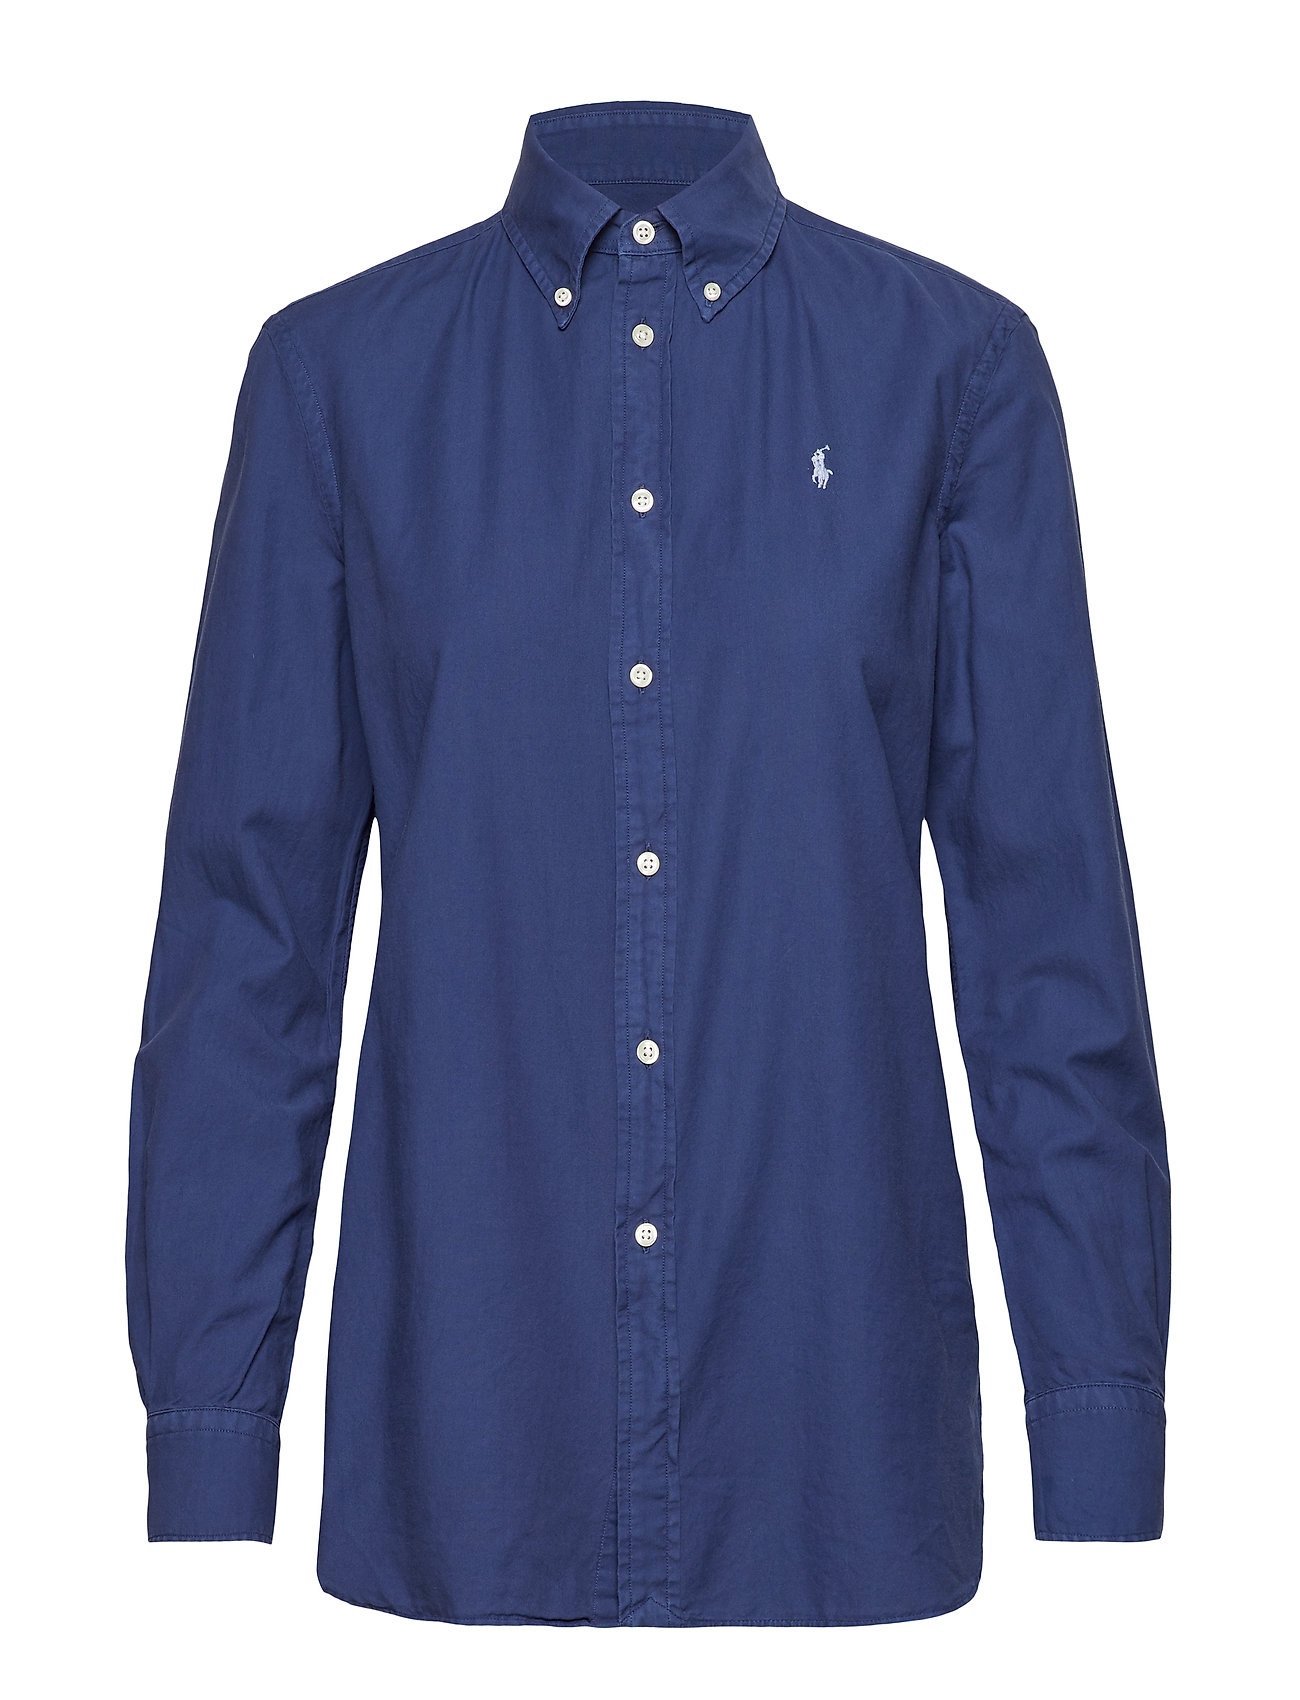 Polo Ralph Lauren Relaxed Fit Oxford Shirt